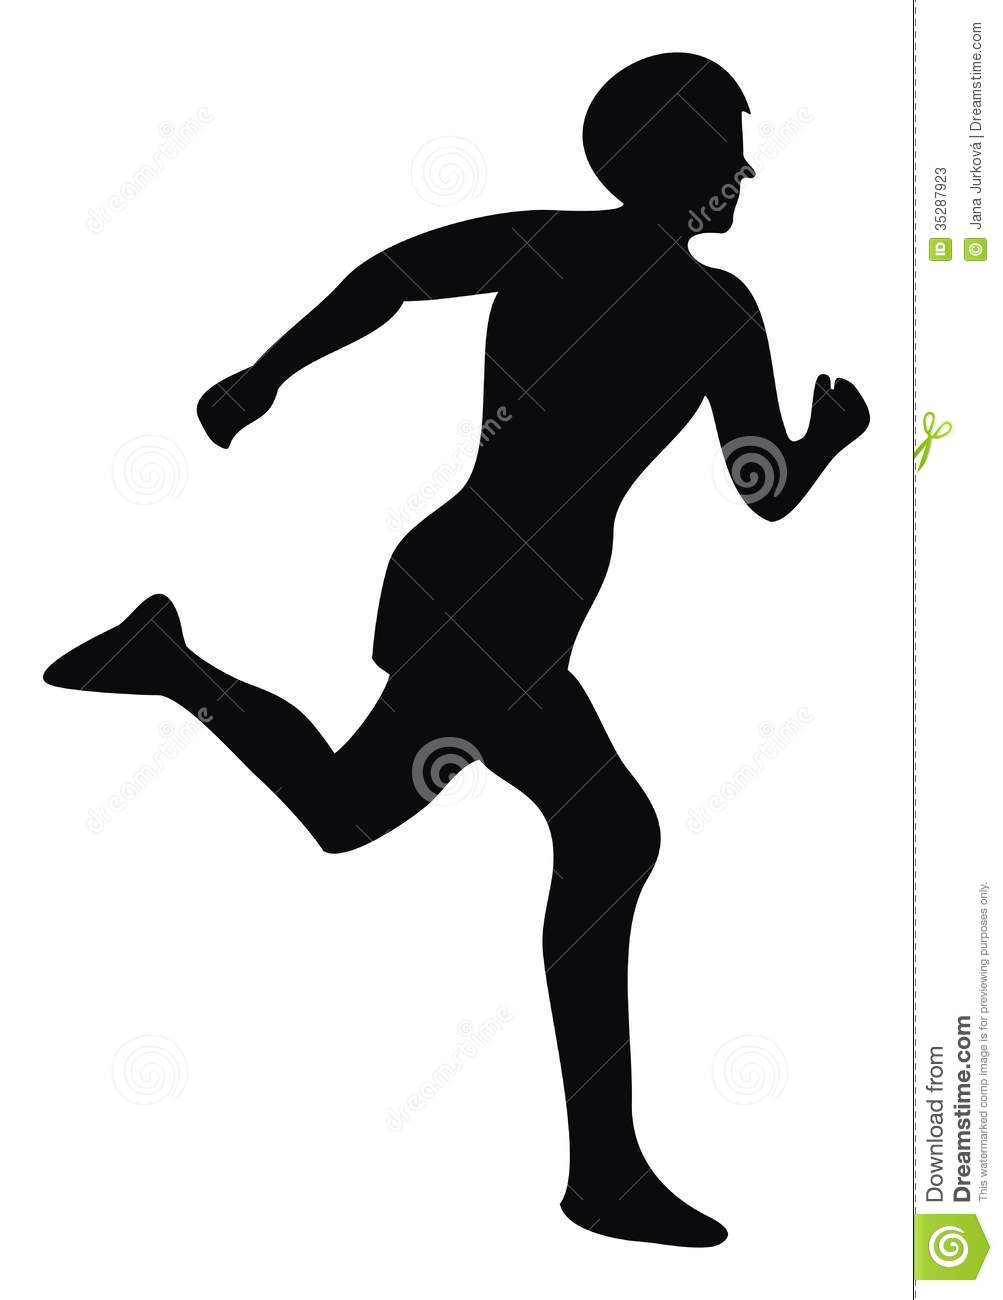 1003x1300 Athlete Silhouette Clipart